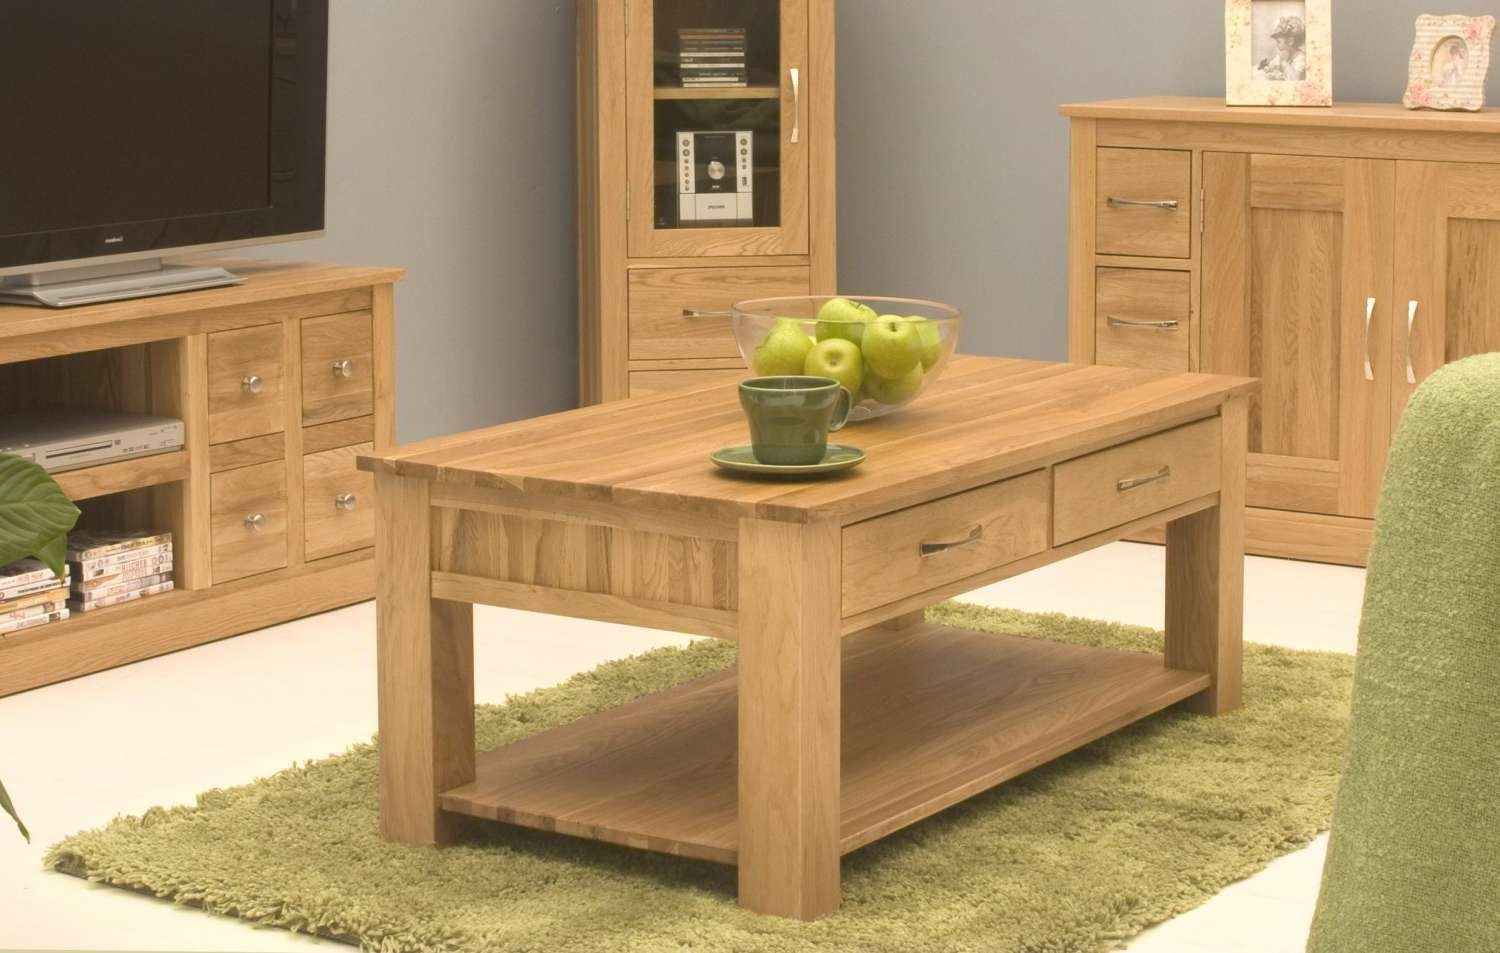 Inspiration Ideas Oak Living Room Furniture Conran Solid Oak Inside Most Up To Date Solid Oak Coffee Table With Storage (View 7 of 20)